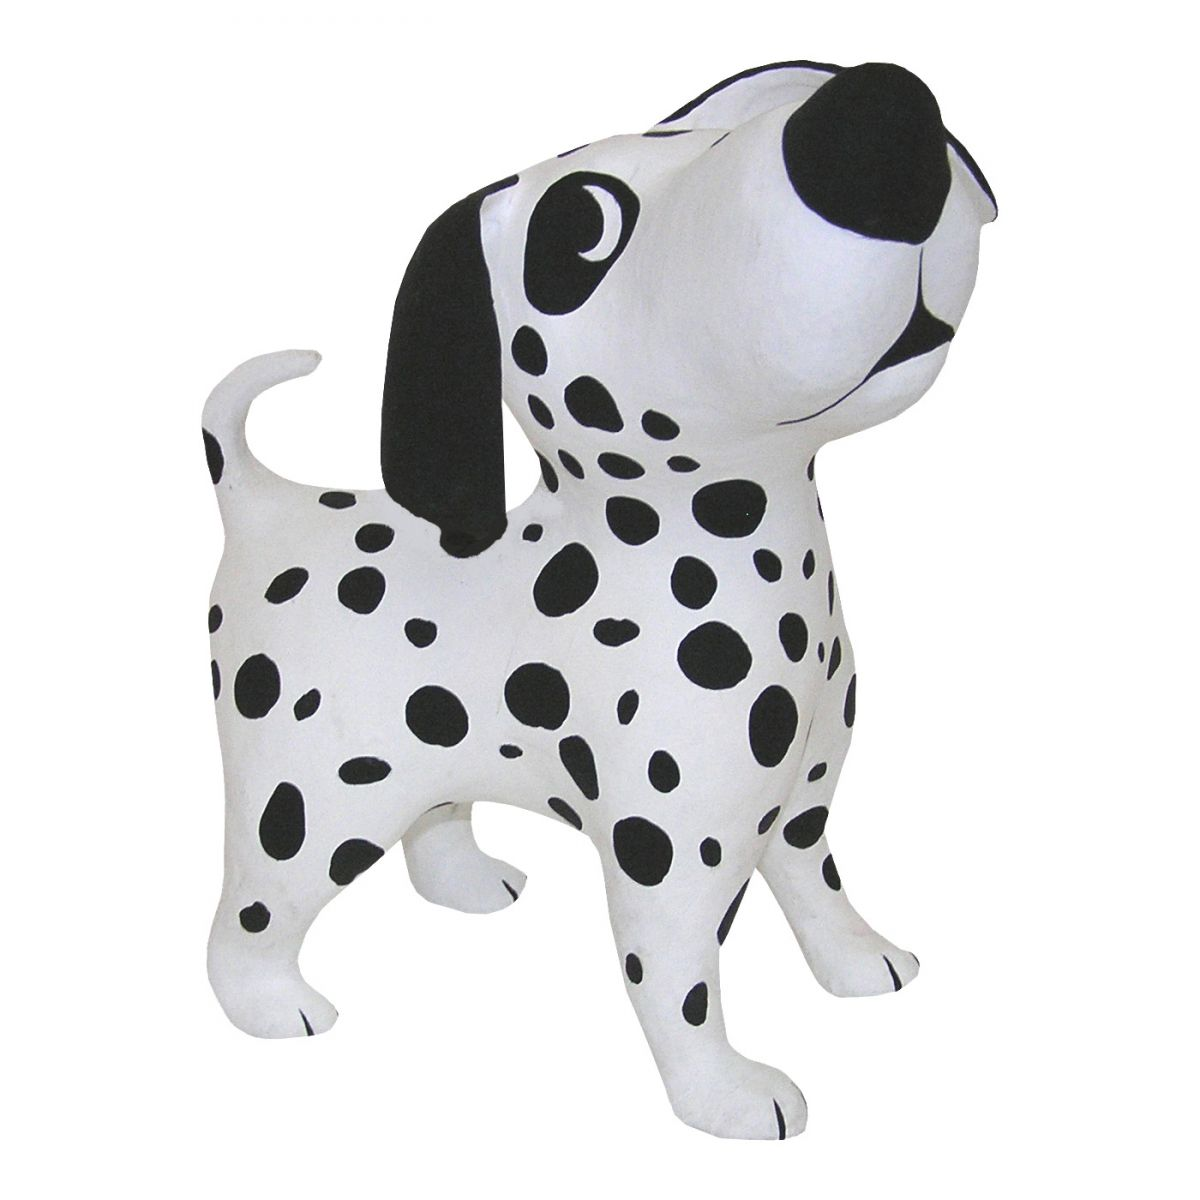 Snoop Dalmation with Eyes (Peça de Mostruário ) - FunArt